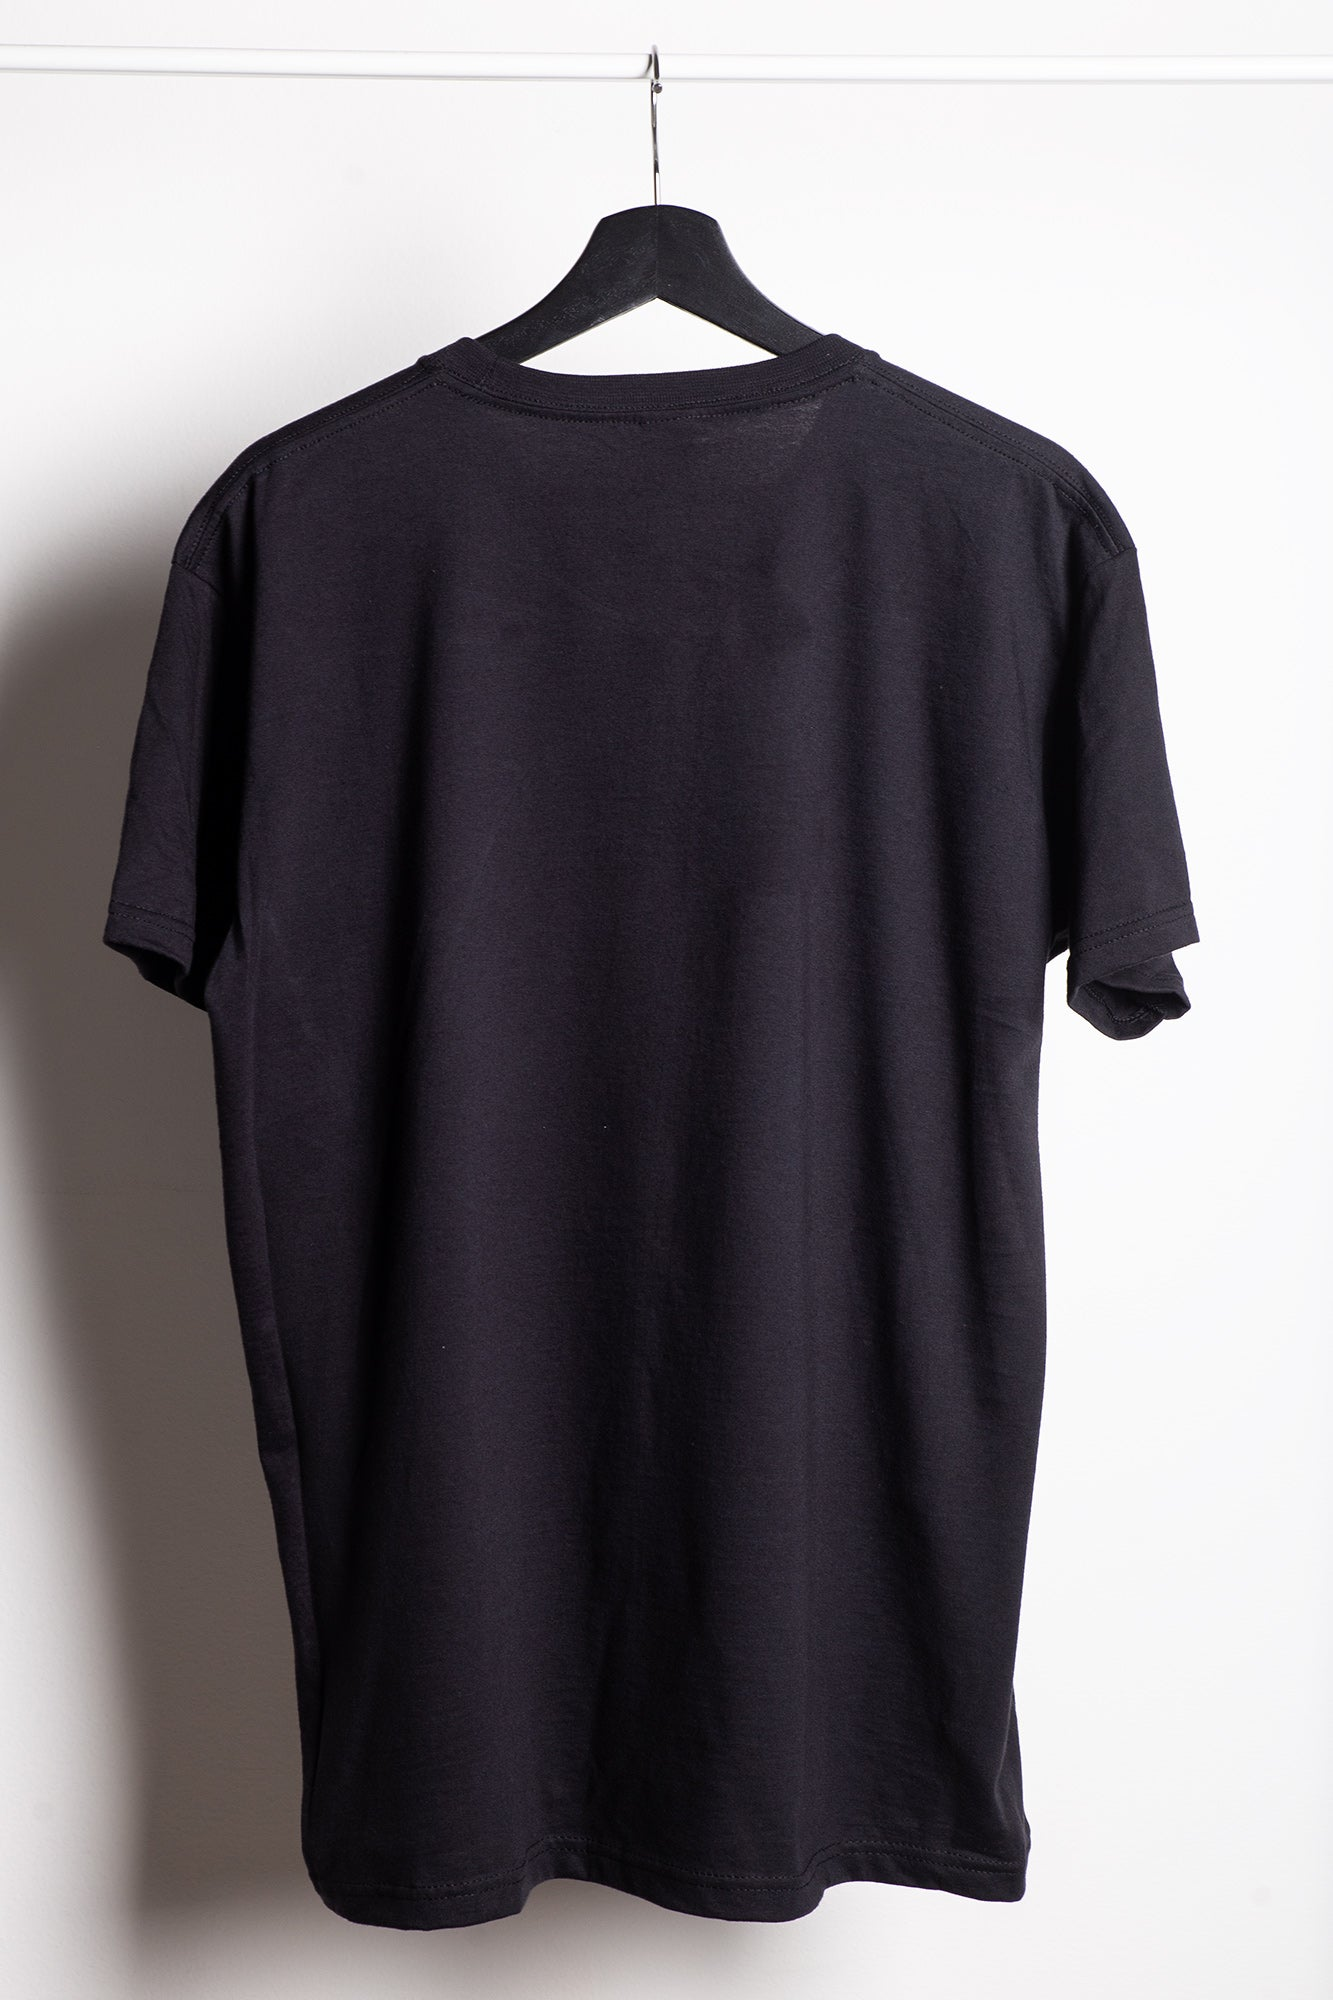 Image of T-SHIRT MADNESS COL. BLACK